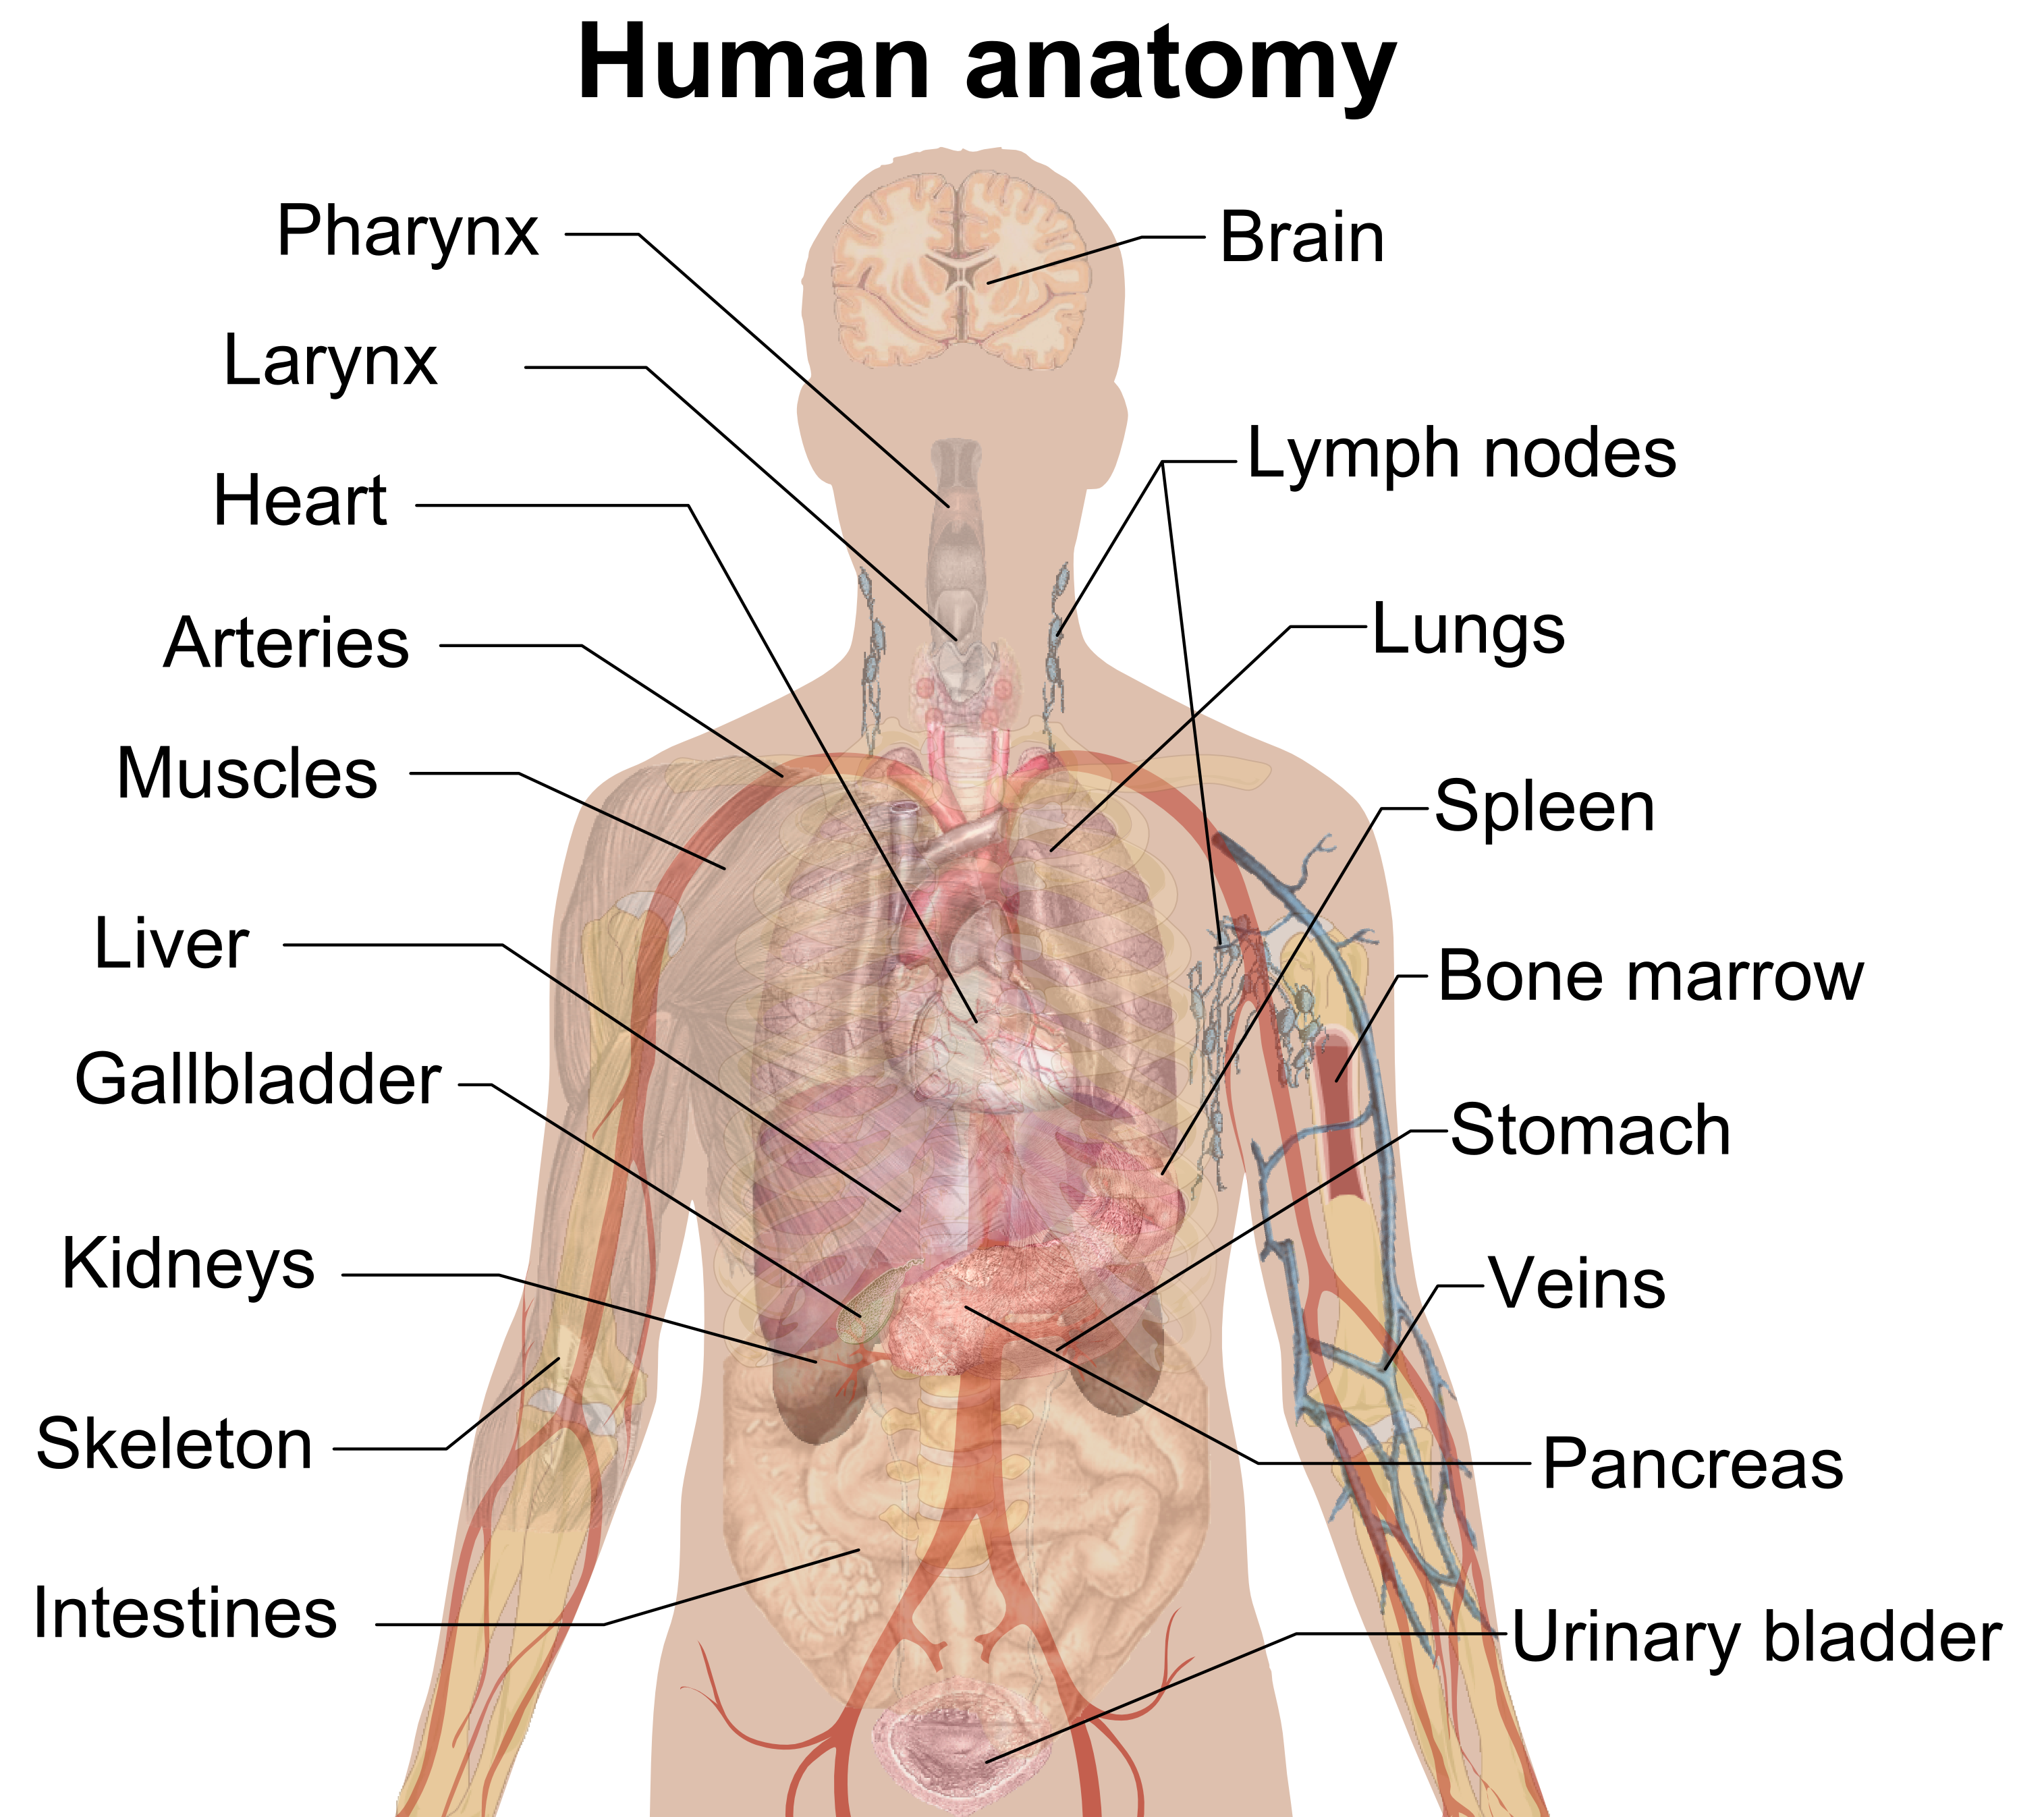 File:Man shadow anatomy.png - Wikimedia Commons